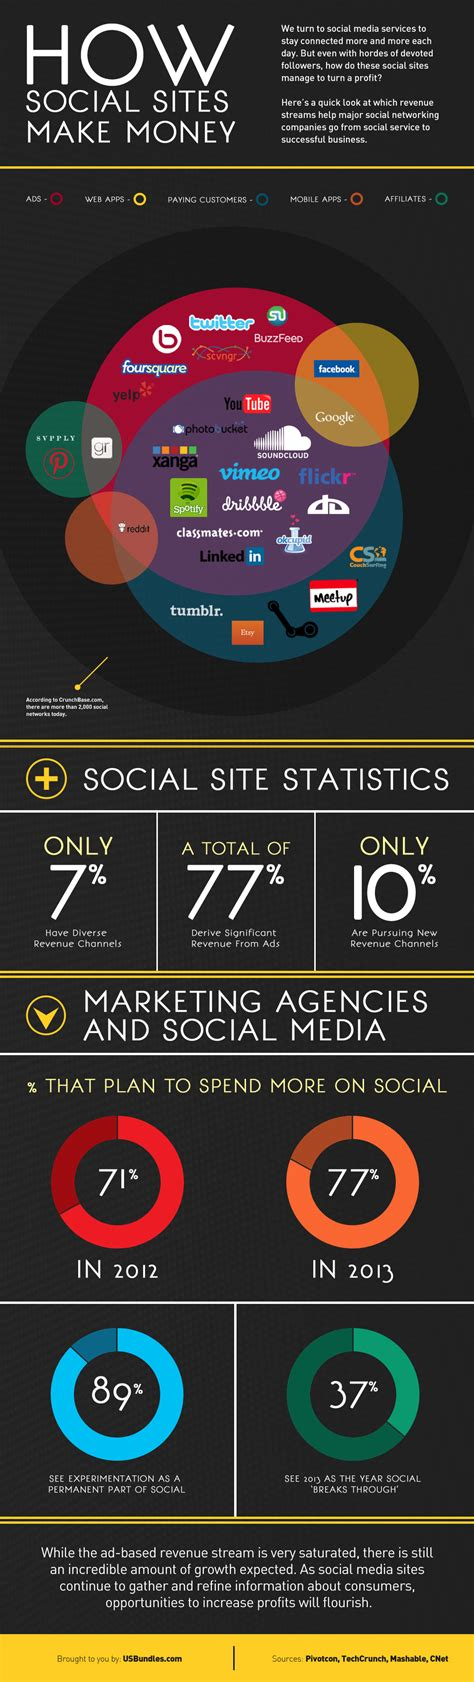 How Do Online Travel Sites Make Money - how social sites make money blog about infographics and data visualization cool